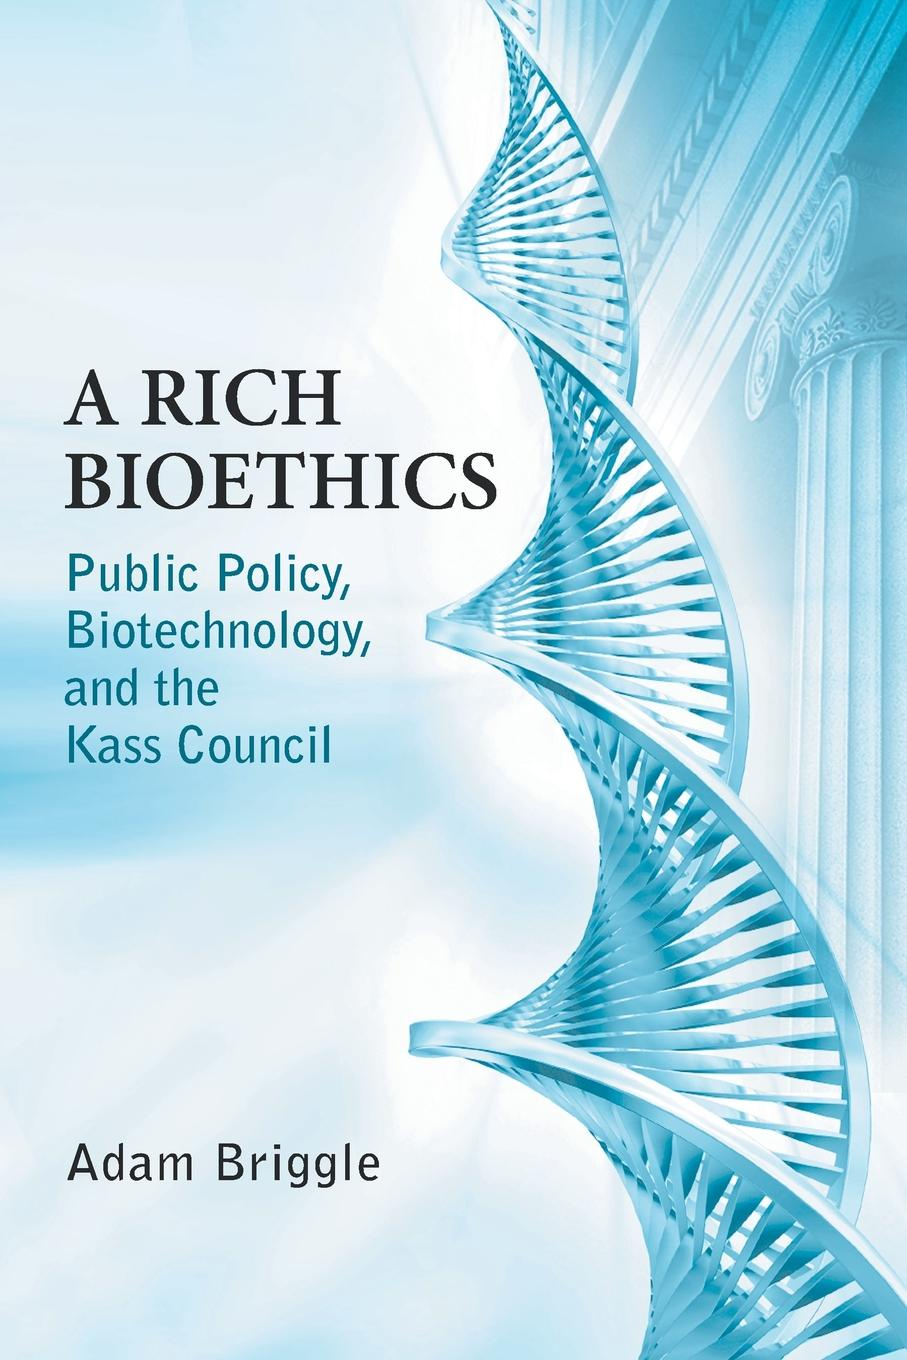 Adam Briggle Rich Bioethics. Public Policy, Biotechnology, and the Kass Council adam briggle rich bioethics public policy biotechnology and the kass council